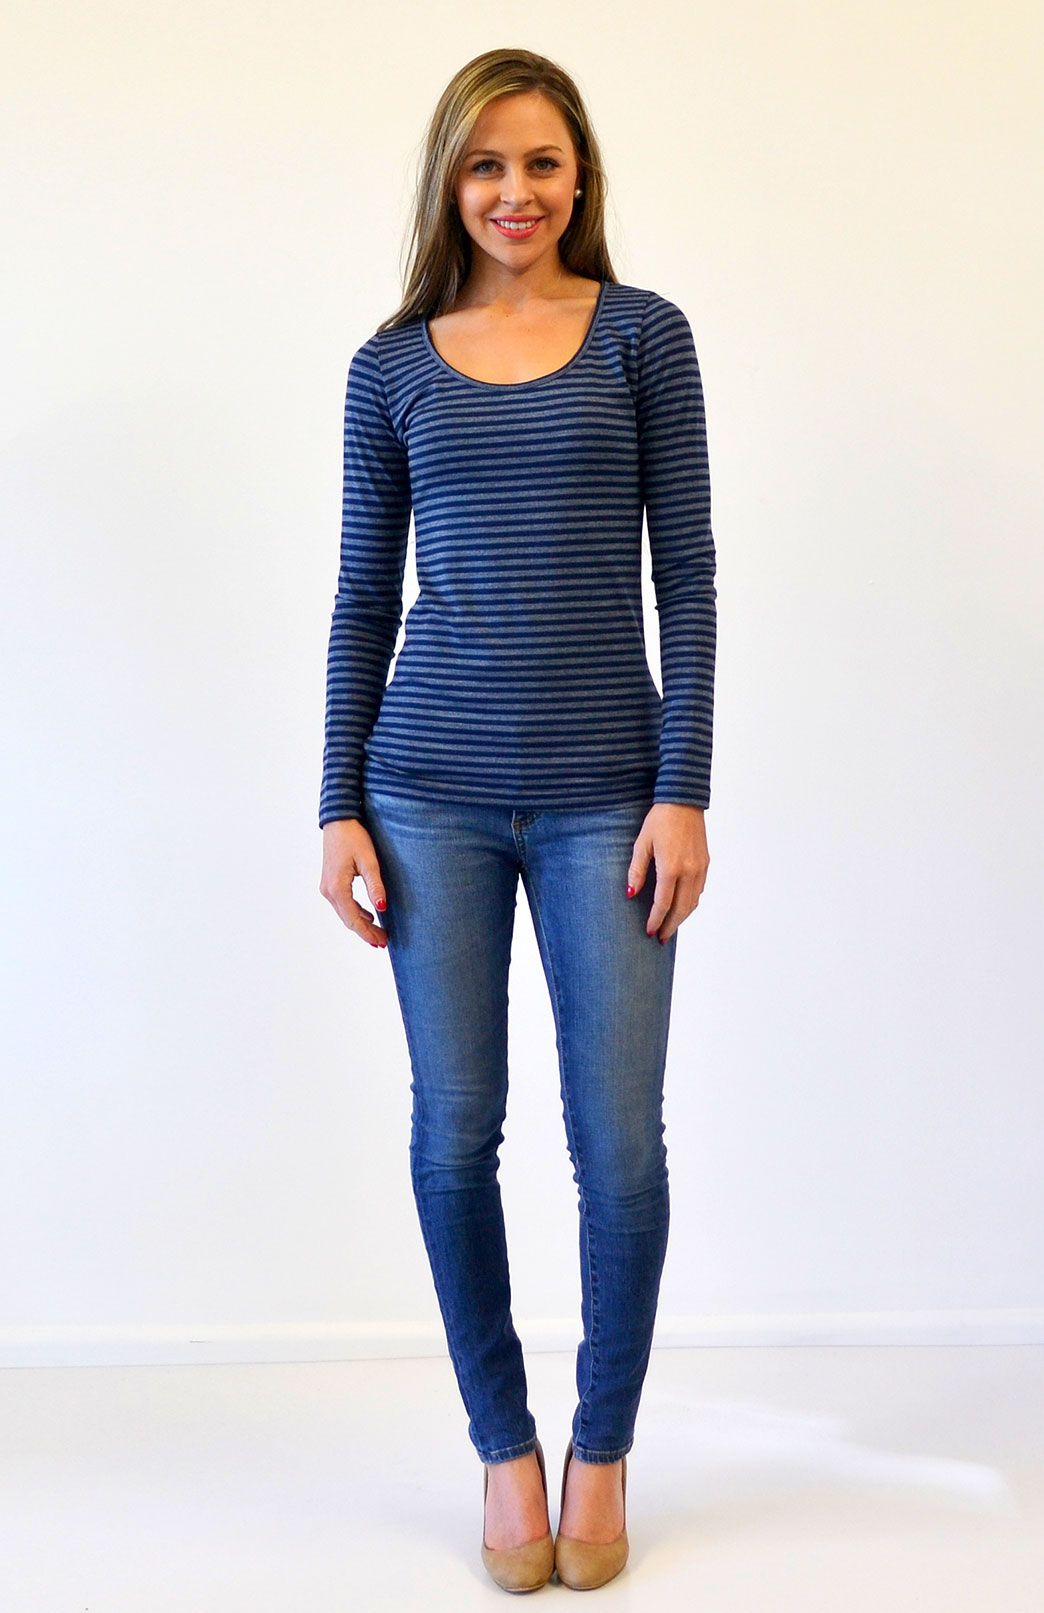 Scoop Neck Top - Patterned - Women's Blue and Grey Stripe Merino Wool Blend Long Sleeved Scoop Neck Top - Smitten Merino Tasmania Australia